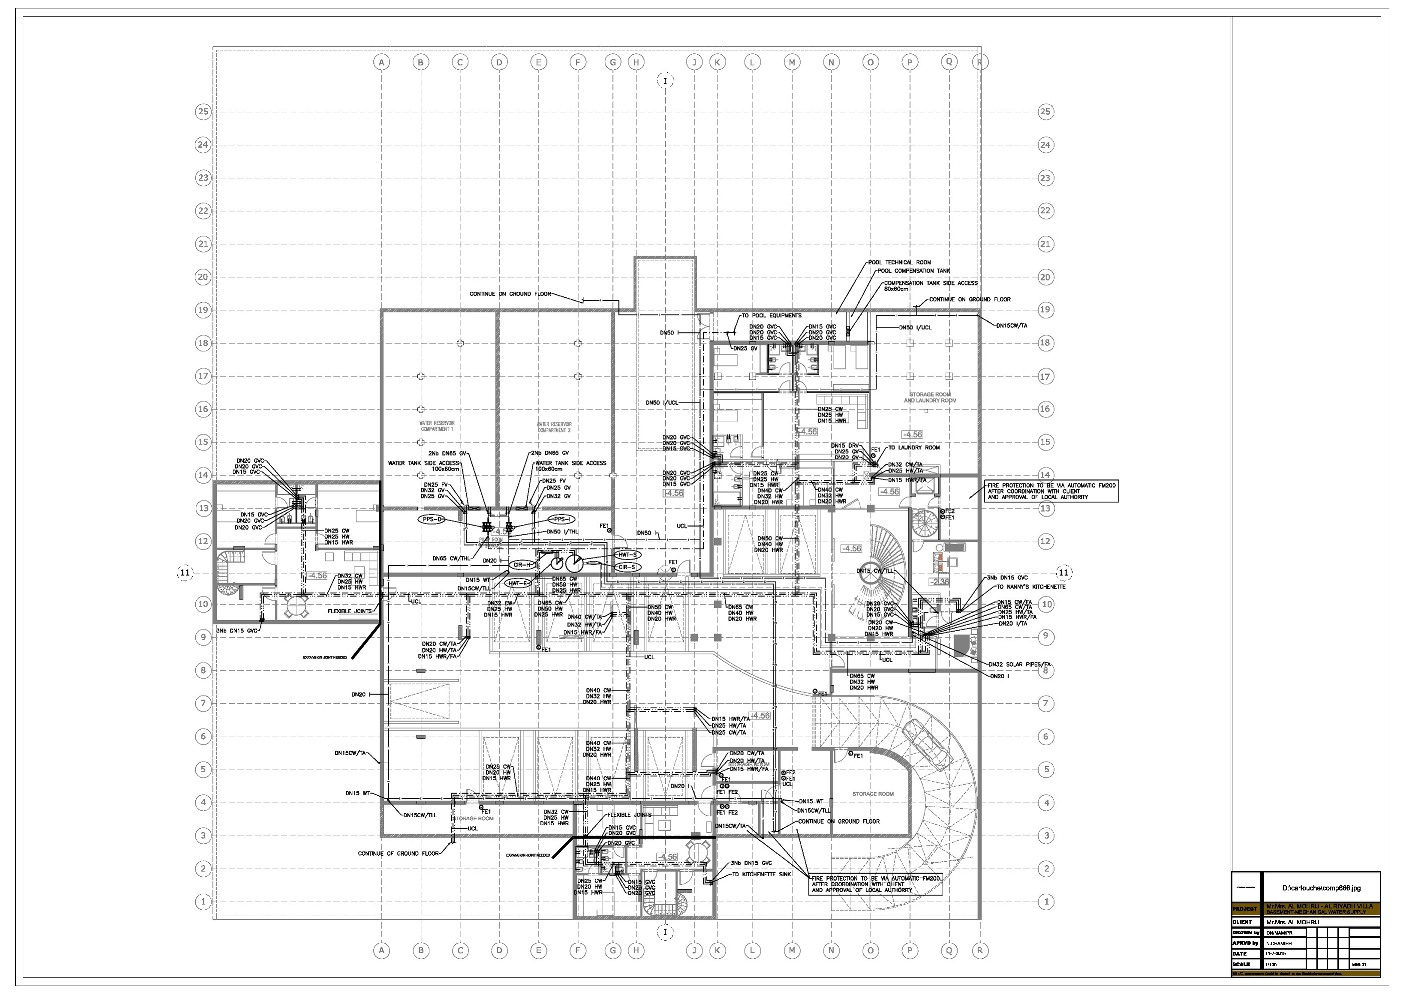 Mechanical Electrical Plumbing Mep Projects In Lebanon And Middle East Villa Plan Large Water Supply